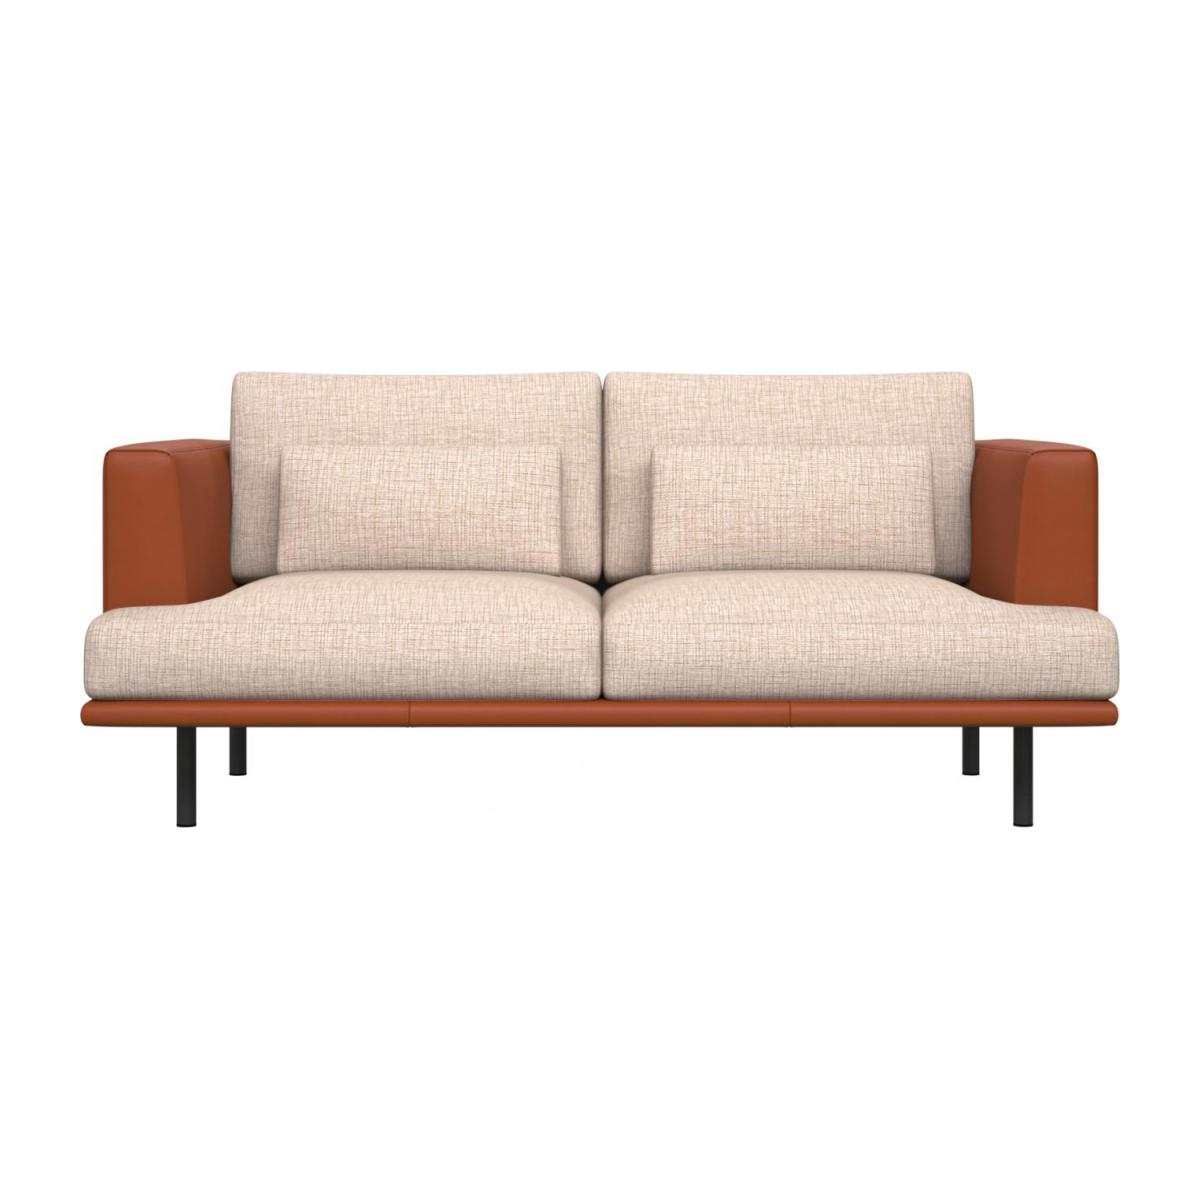 2 seater sofa in Ancio fabric, nature with base and armrests in brown leather n°2